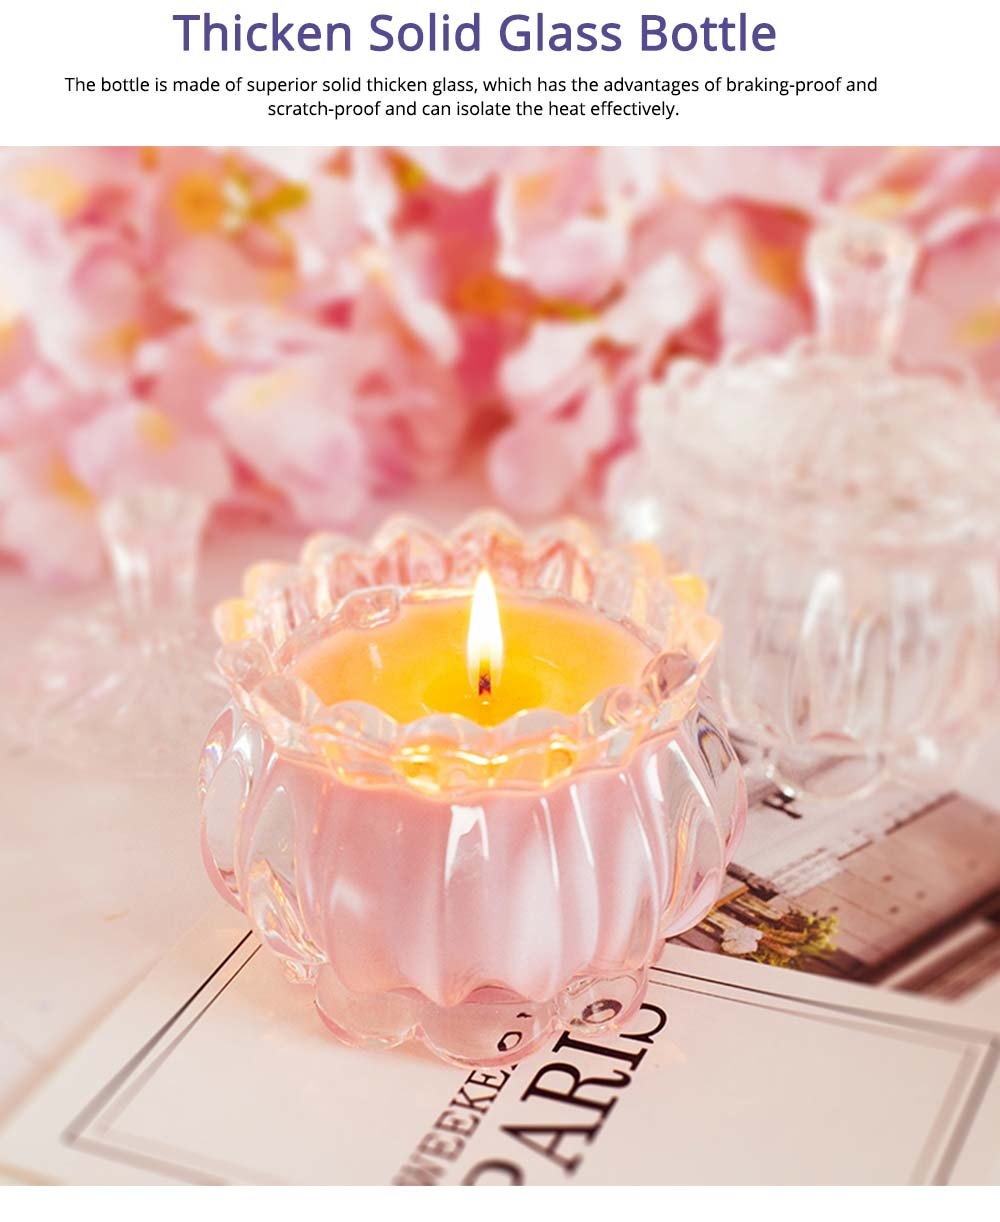 Atmosphere Scented Candle with Thickened Glass, Safety Soy Wax Vegetable Essential Oil Scented Candle, Wedding Birthday Present 5